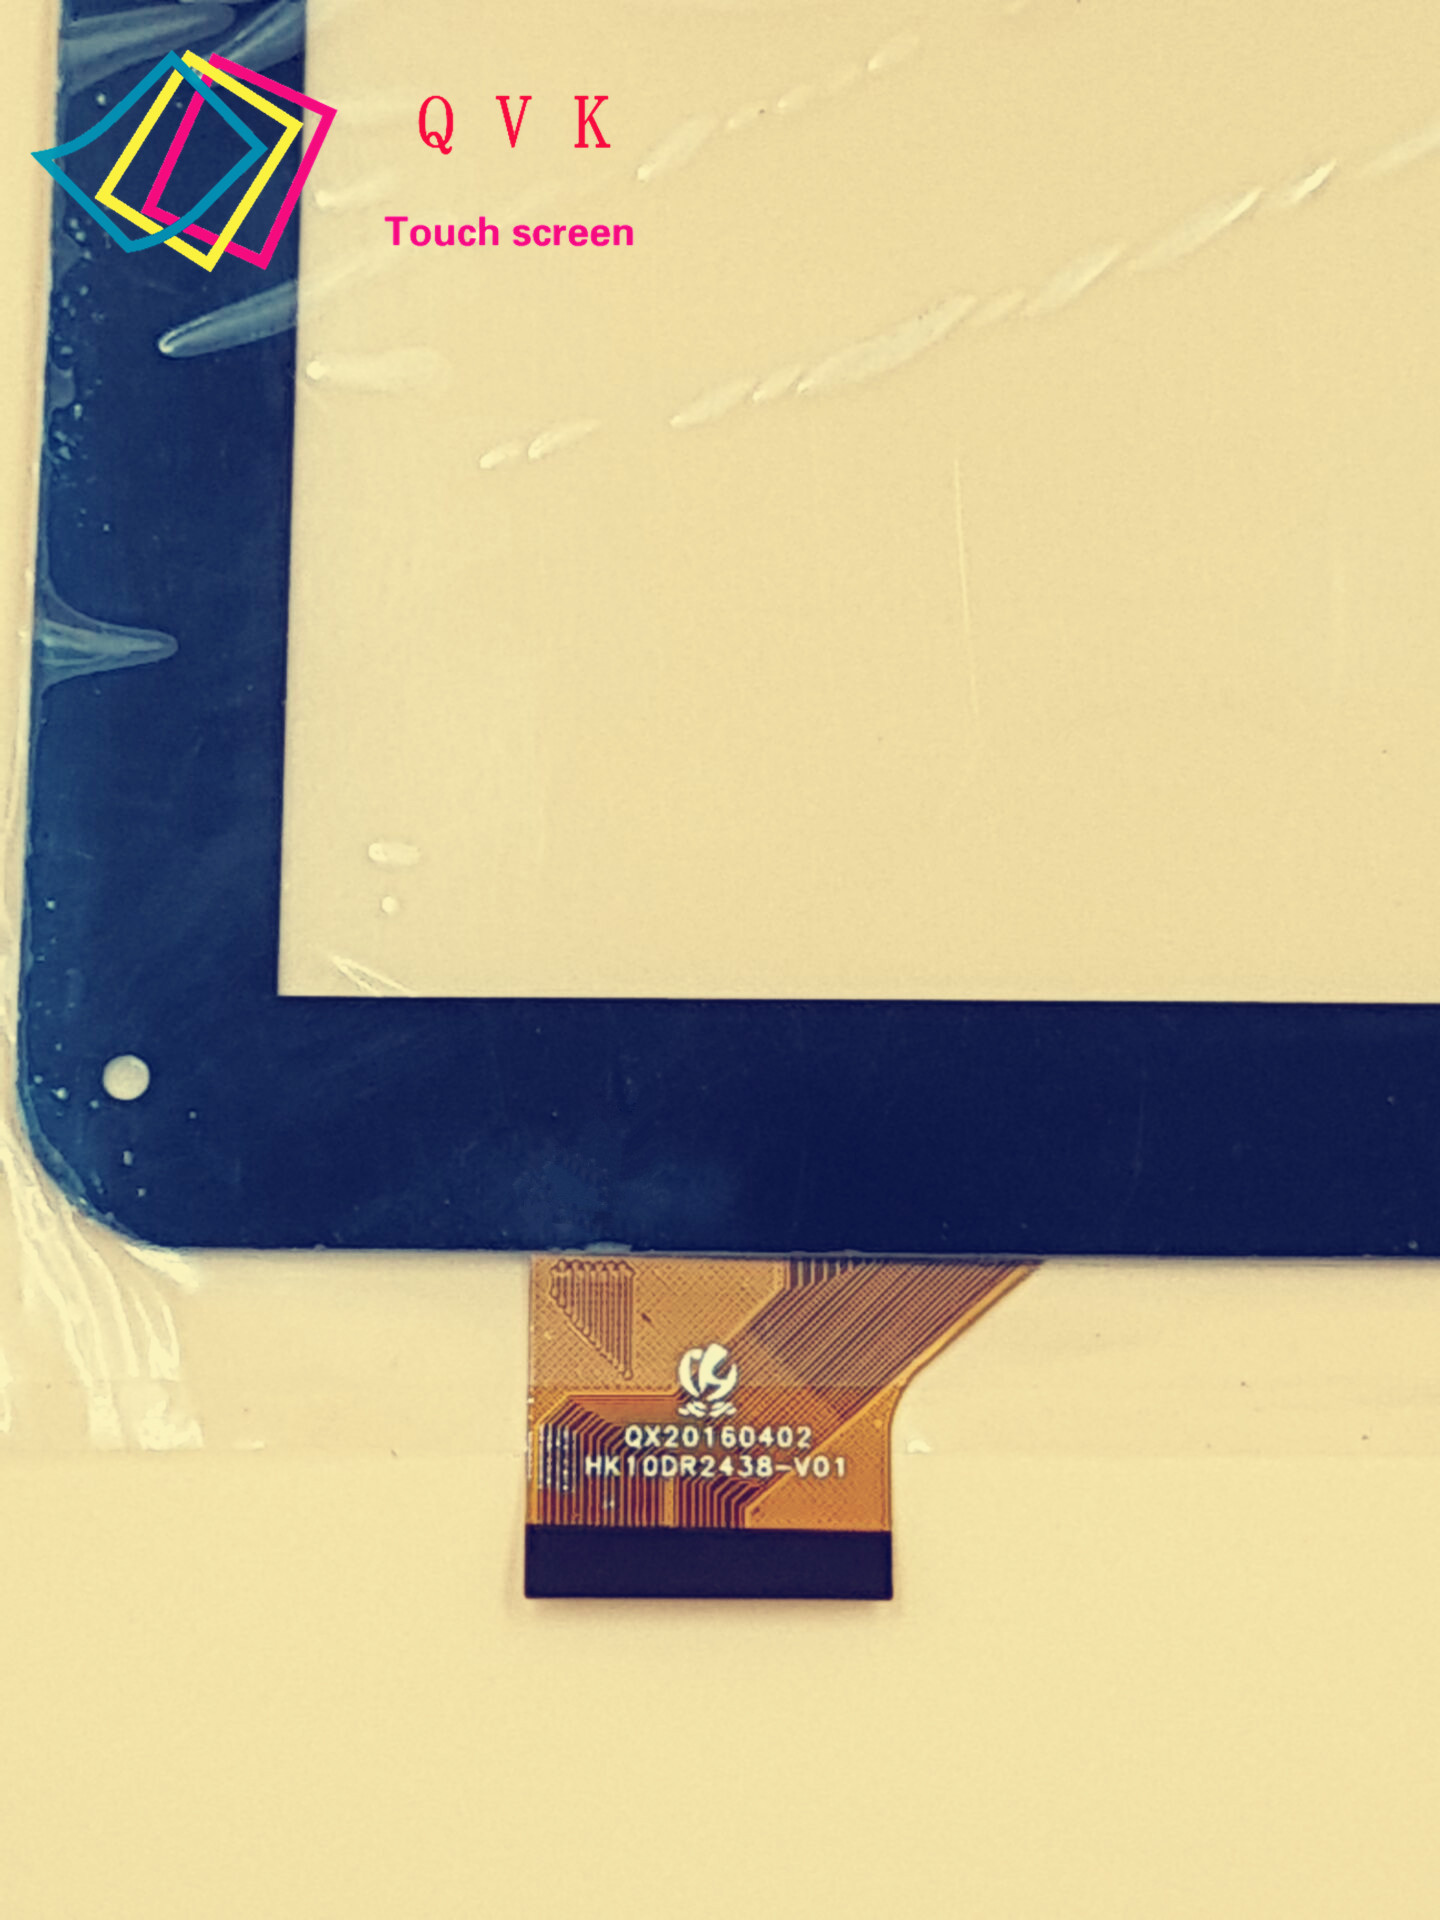 Black 10.1 Inch HK10DR2438  HK10DR2438-V01 External Capacitive Touch Screen Capacitance Panel For Oysters T102MS 3G Touch